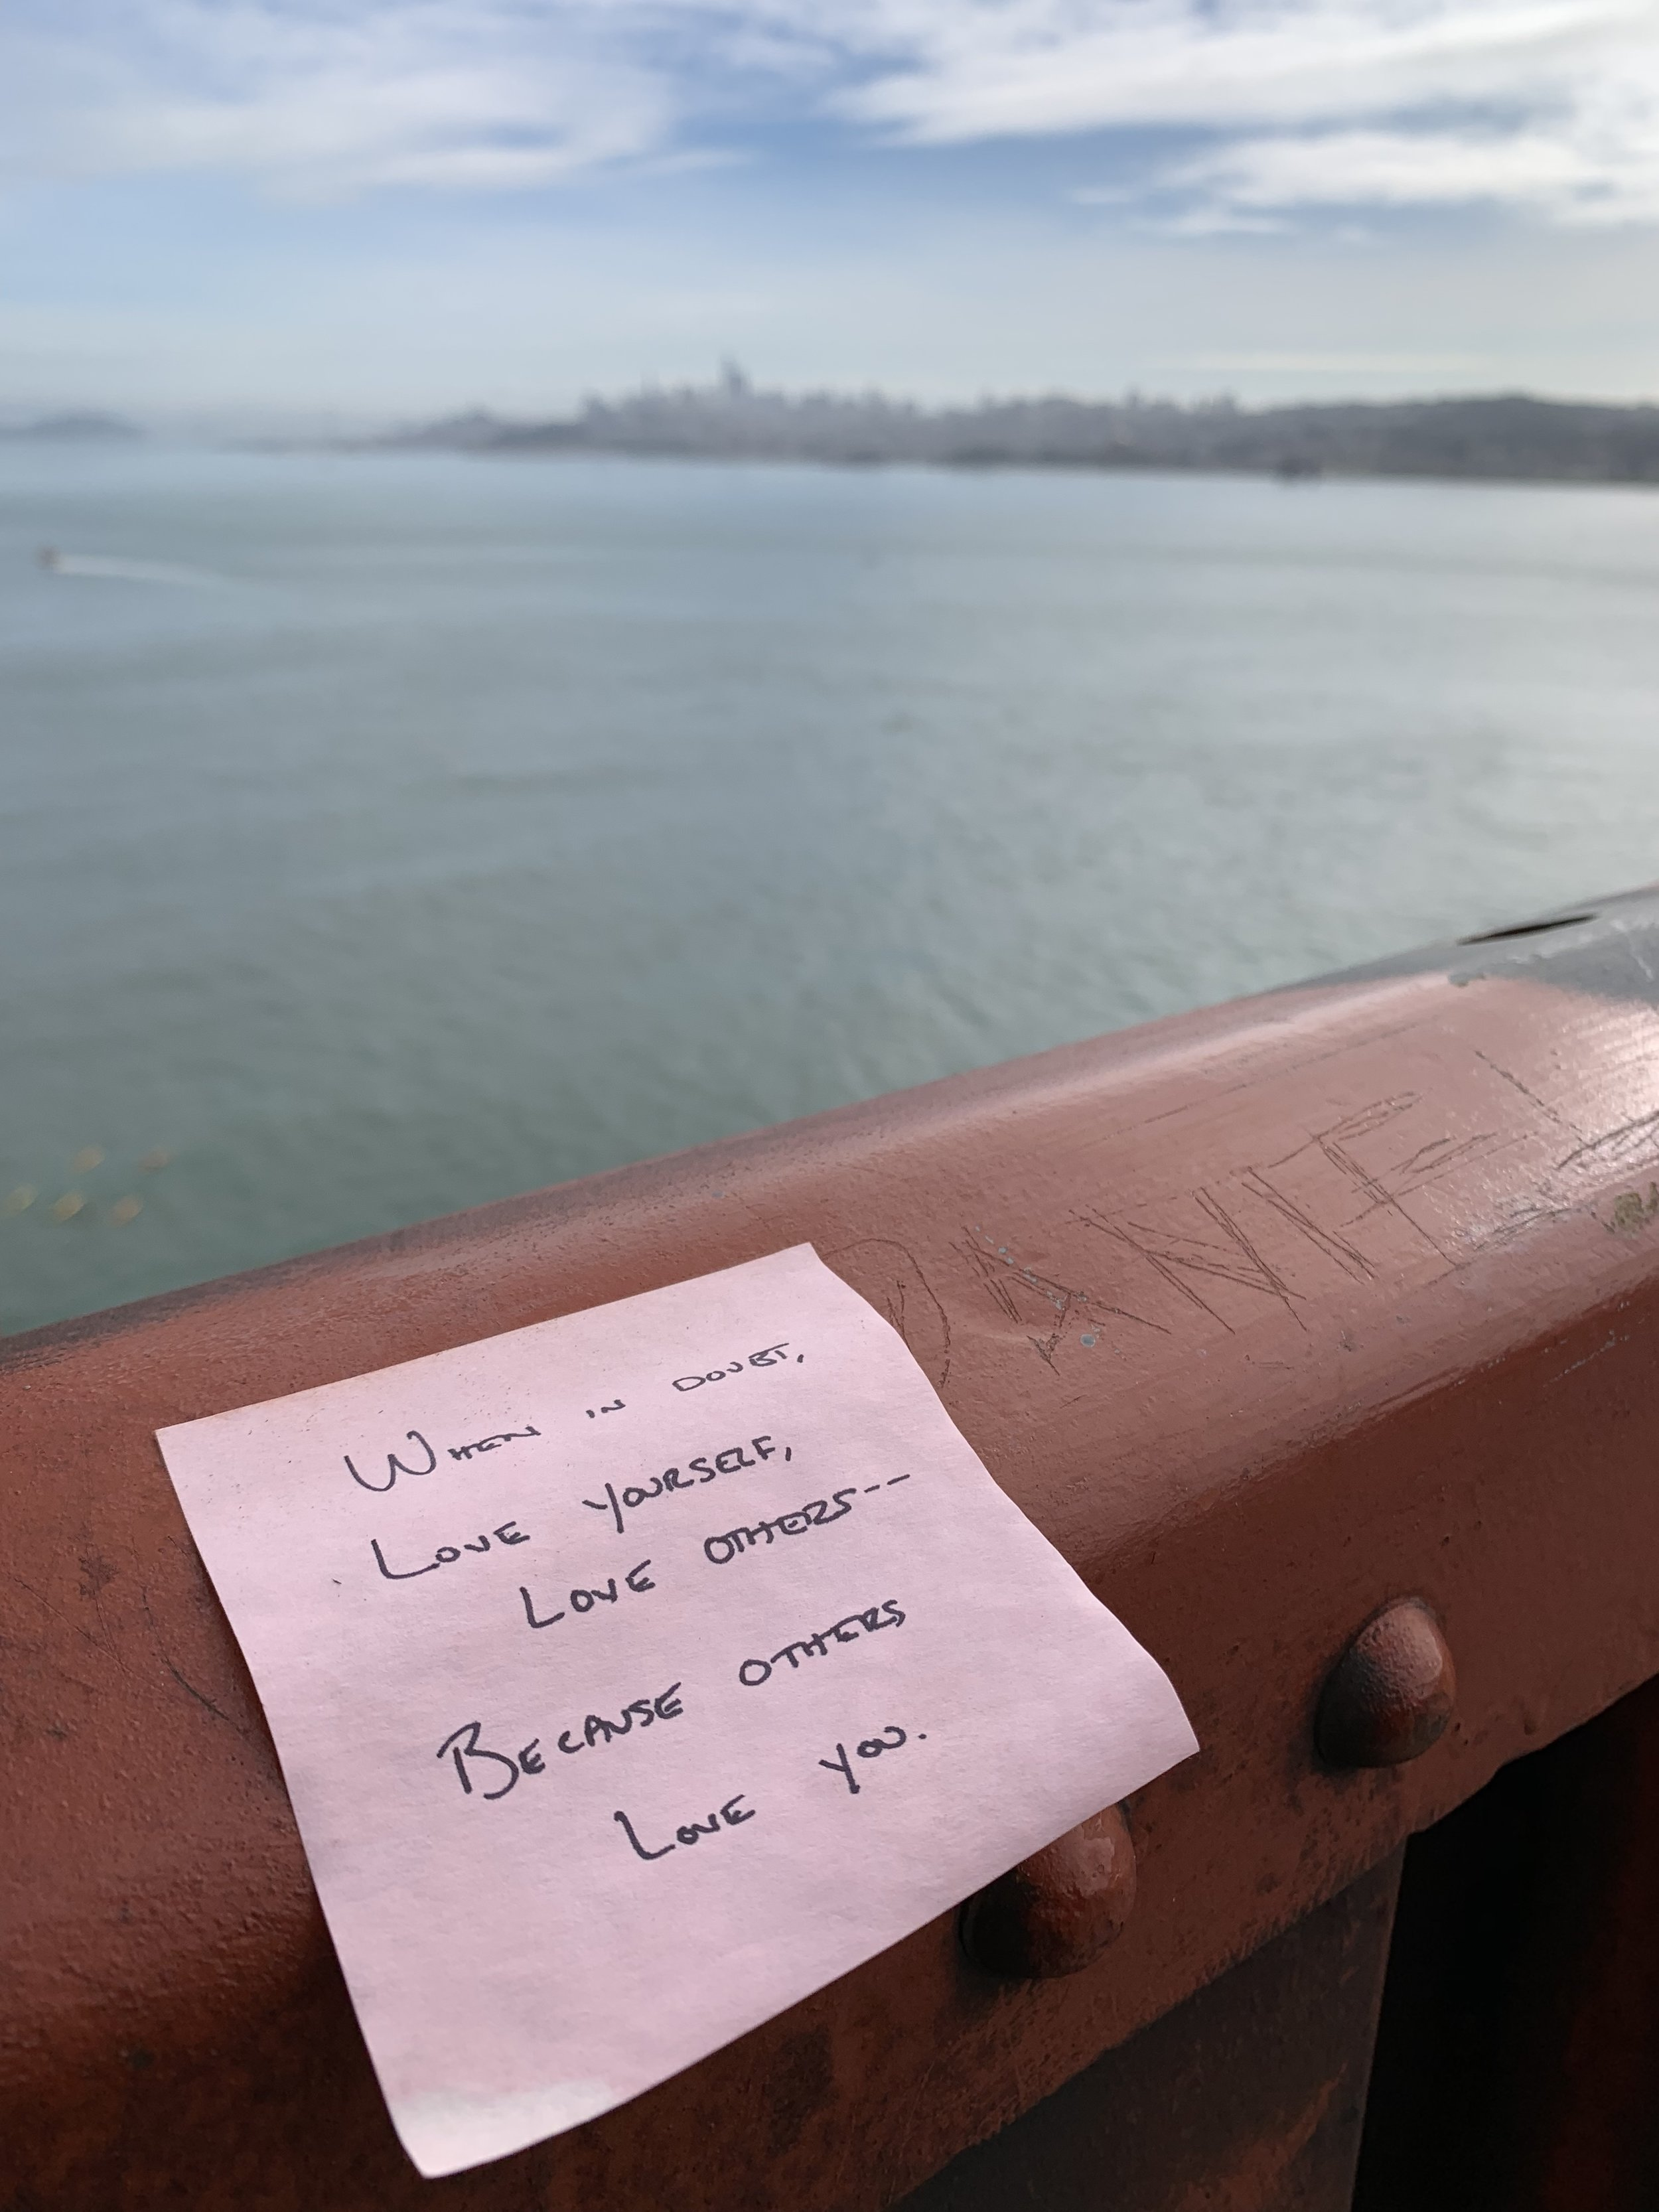 I spotted this sticky note that someone had written and placed on the railing of the bridge. It was a beautiful message that I just had to capture.